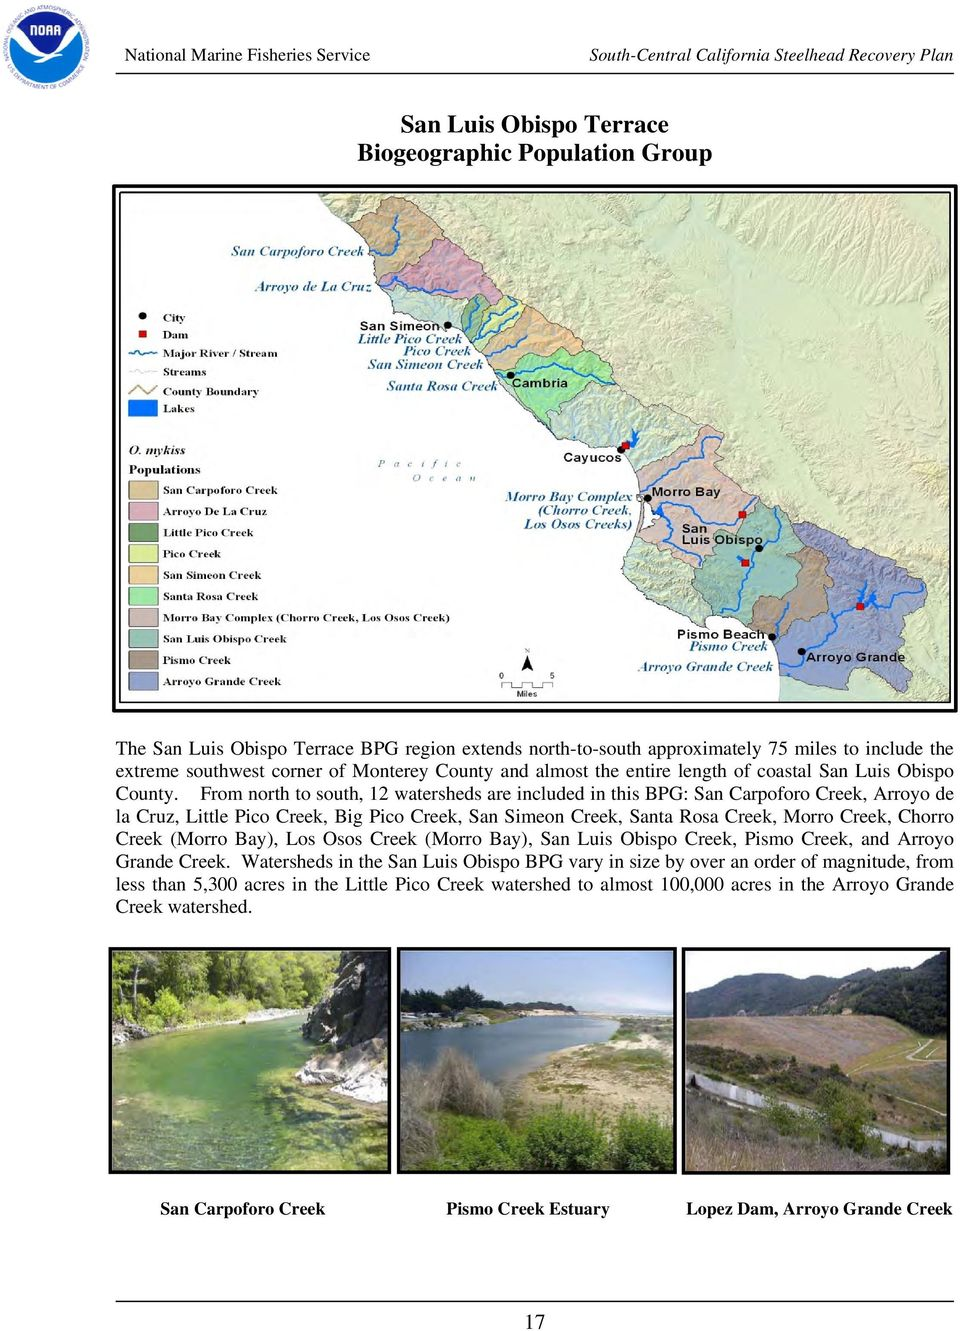 From north to south, 12 watersheds are included in this BPG: San Carpoforo Creek, Arroyo de la Cruz, Little Pico Creek, Big Pico Creek, San Simeon Creek, Santa Rosa Creek, Morro Creek, Chorro Creek